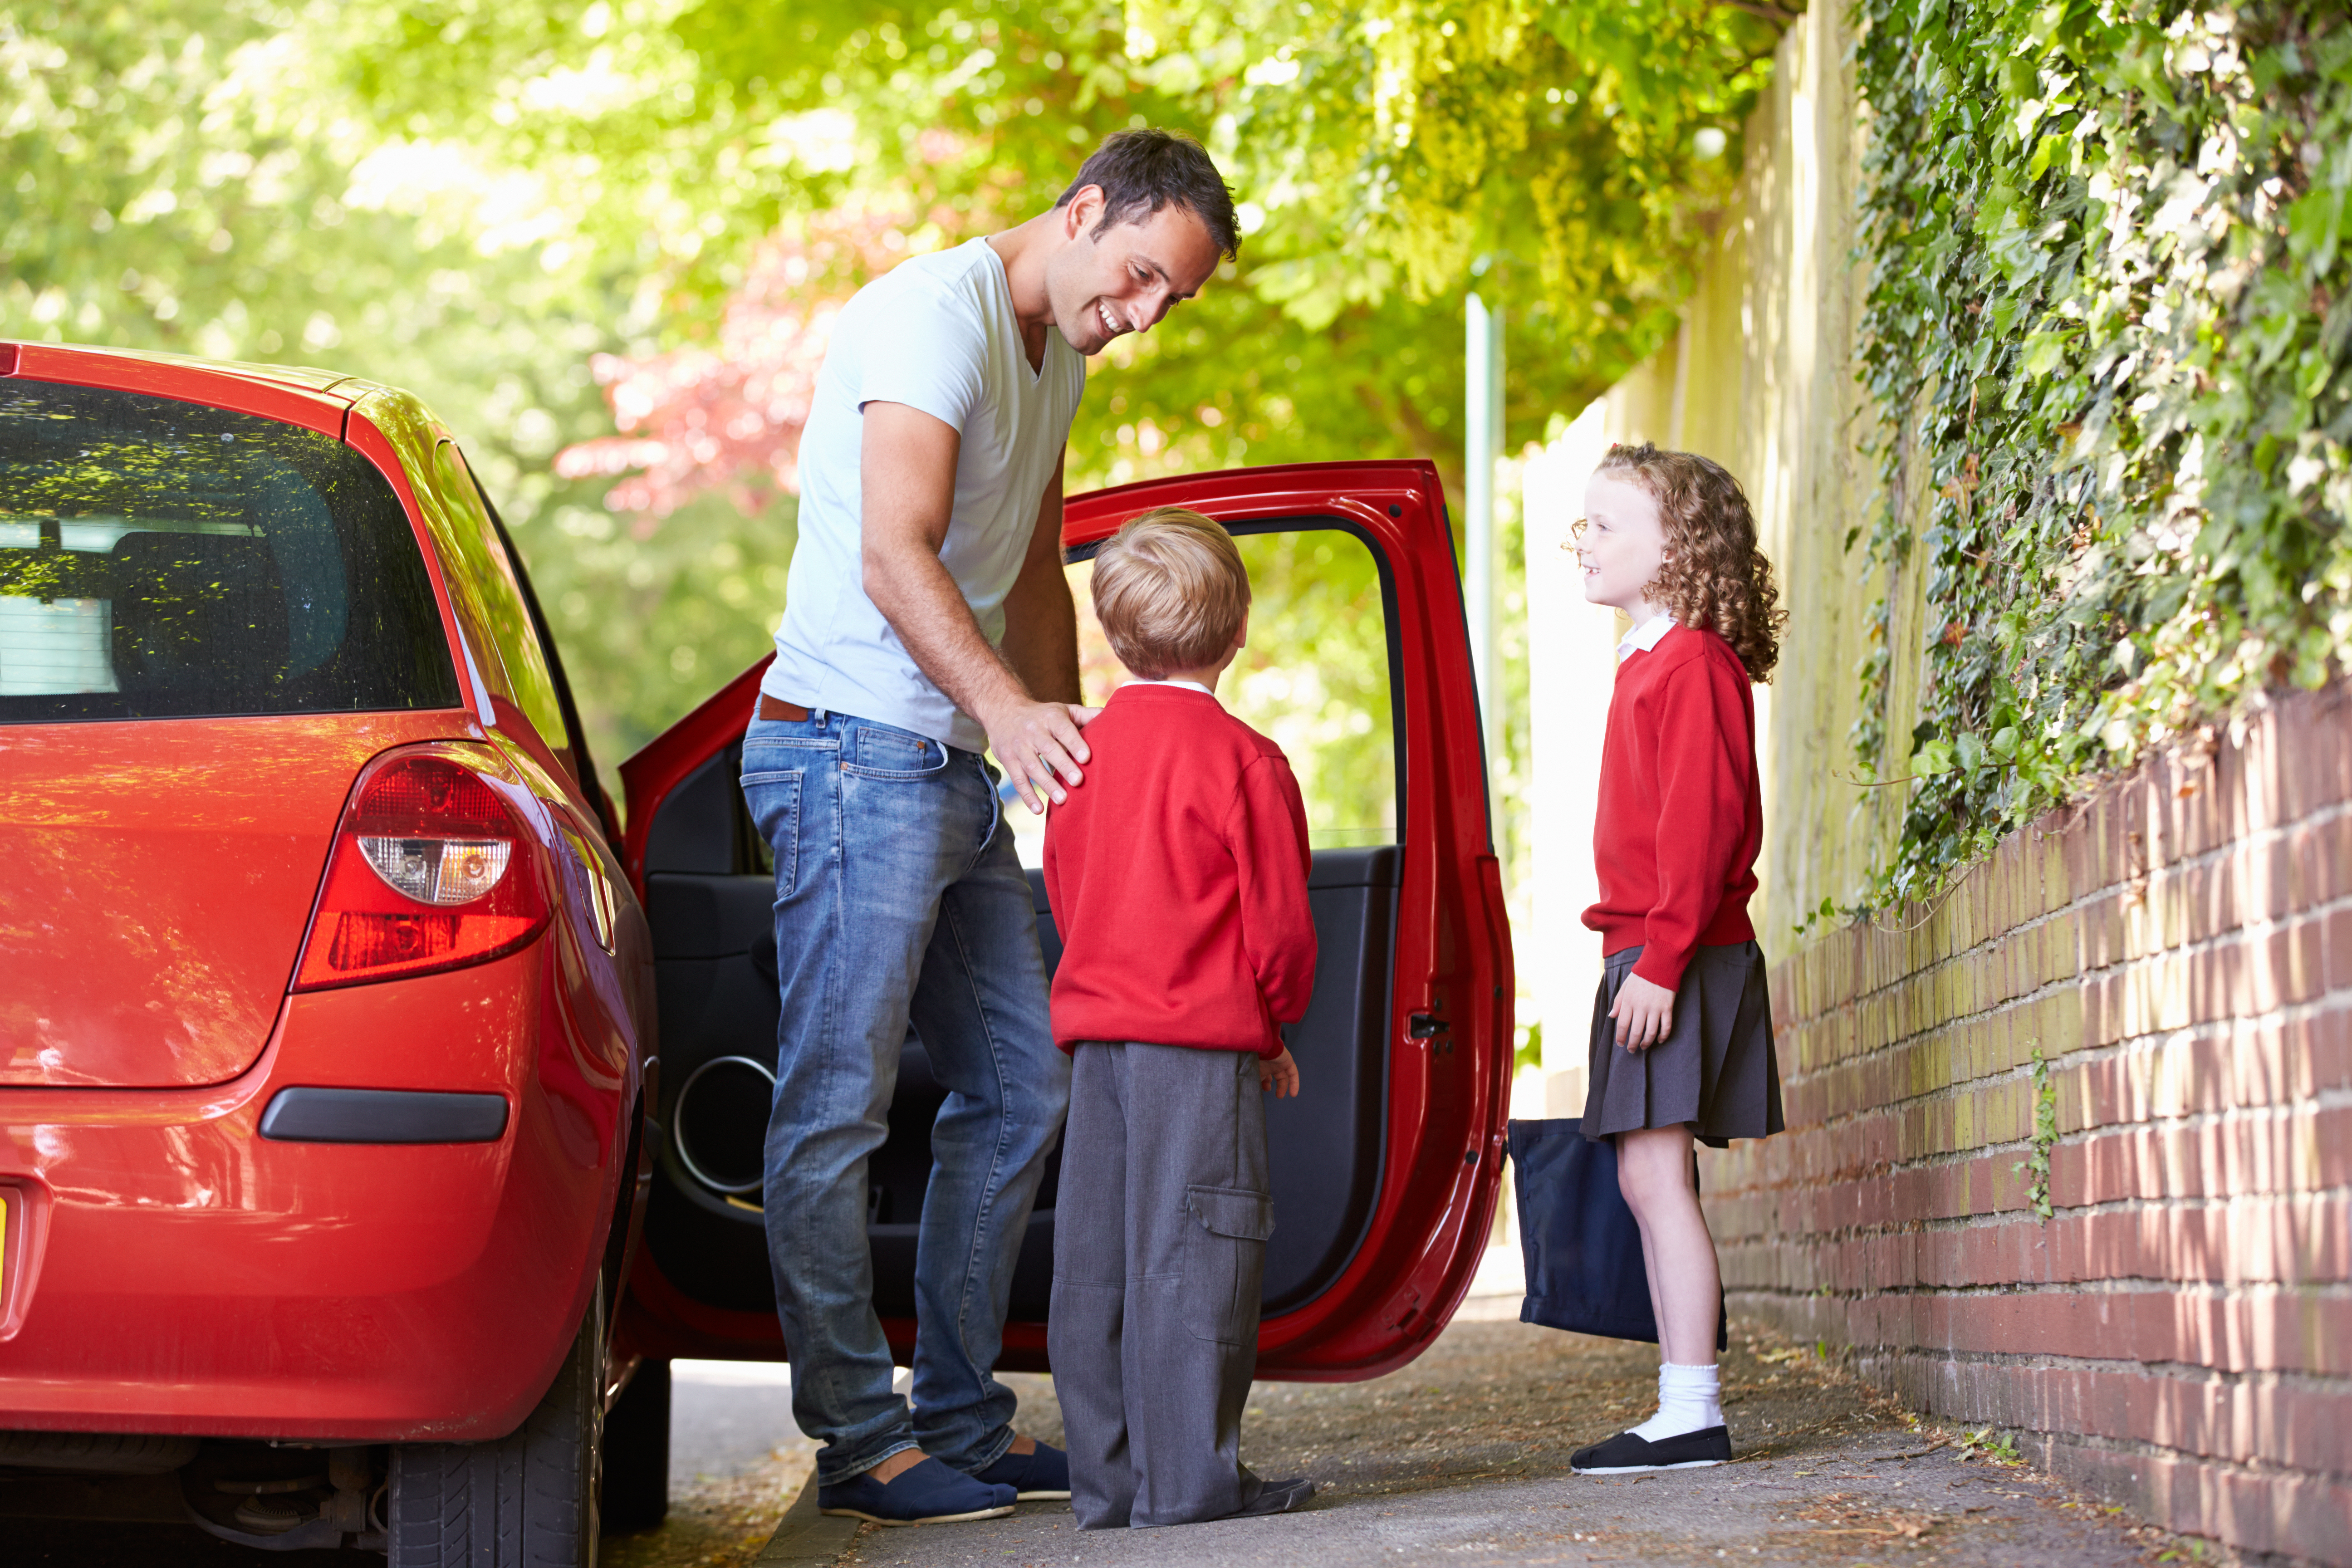 Dad dropping off kids